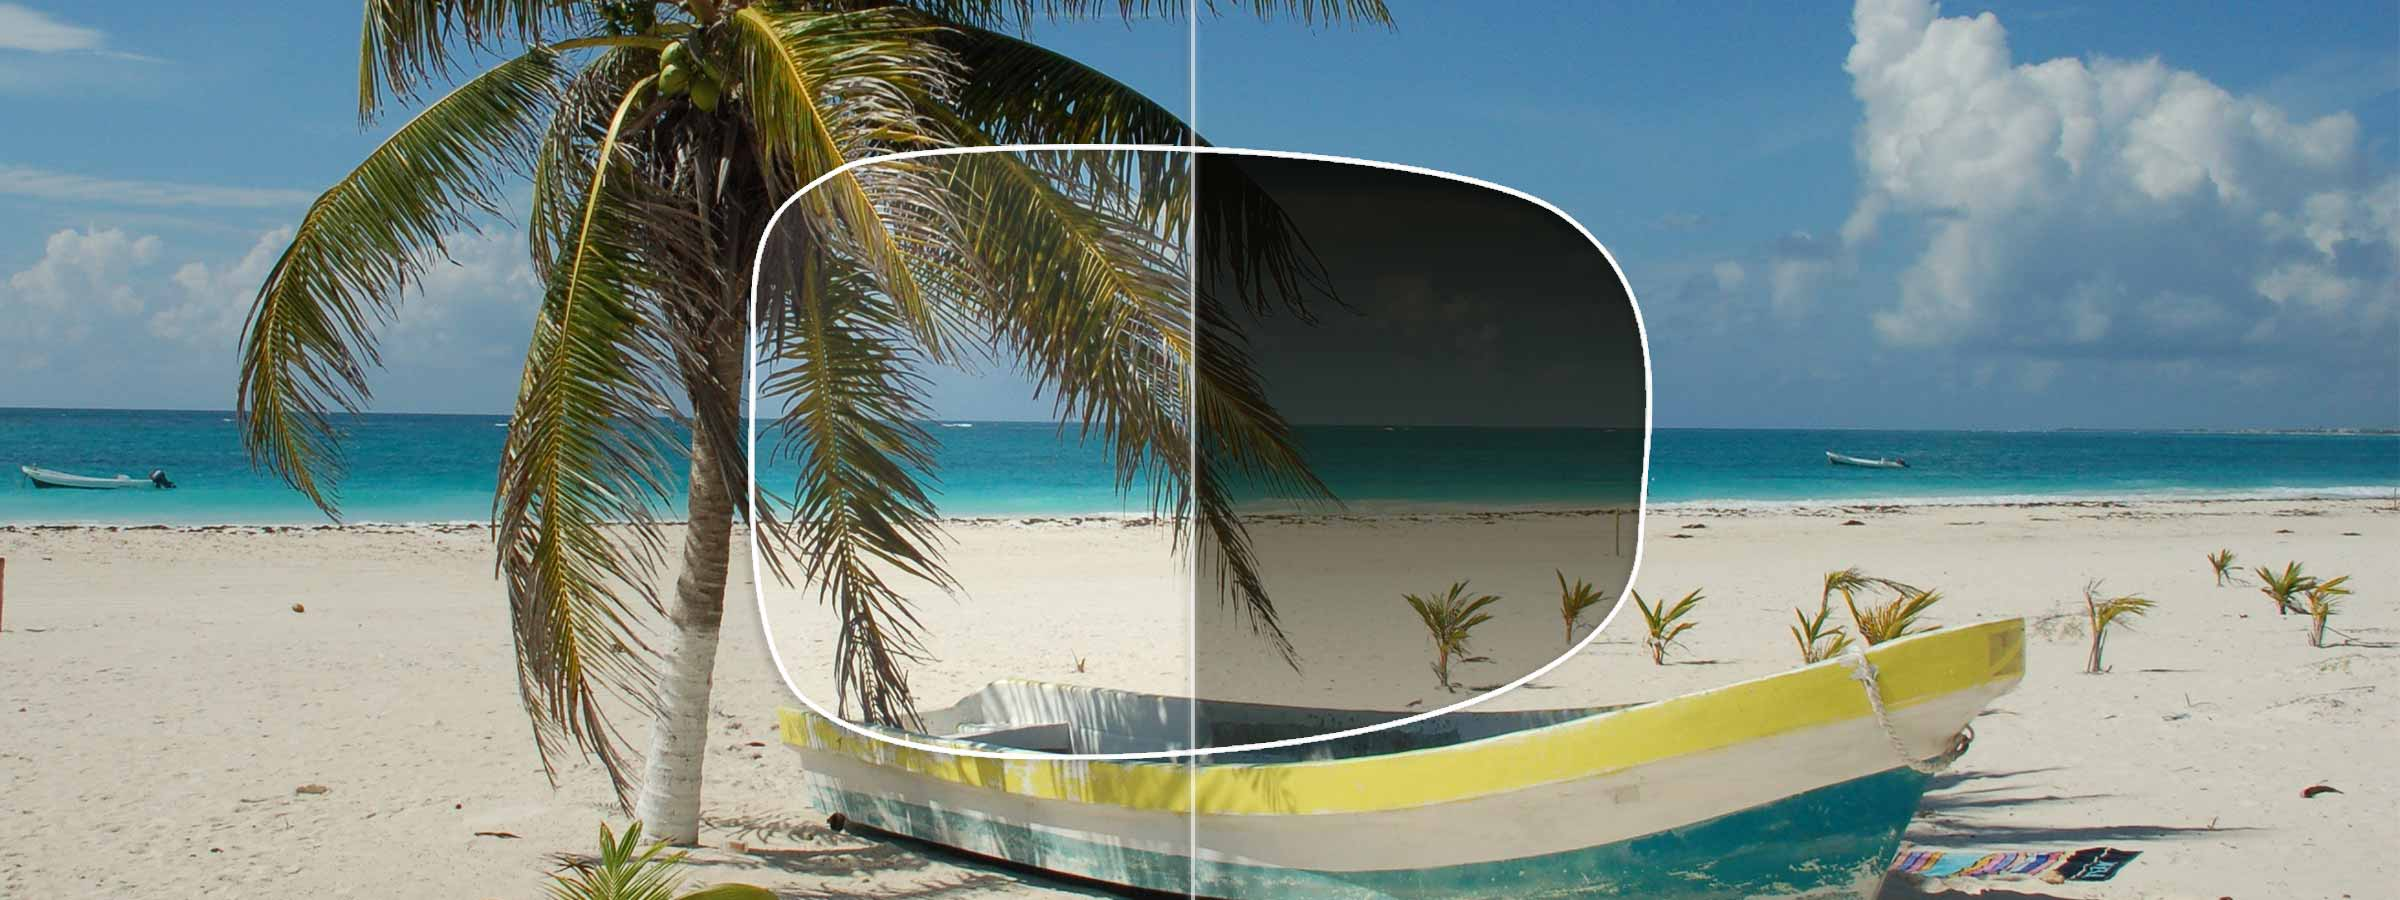 View of a sunny beach through a lens with and without a gradient tint